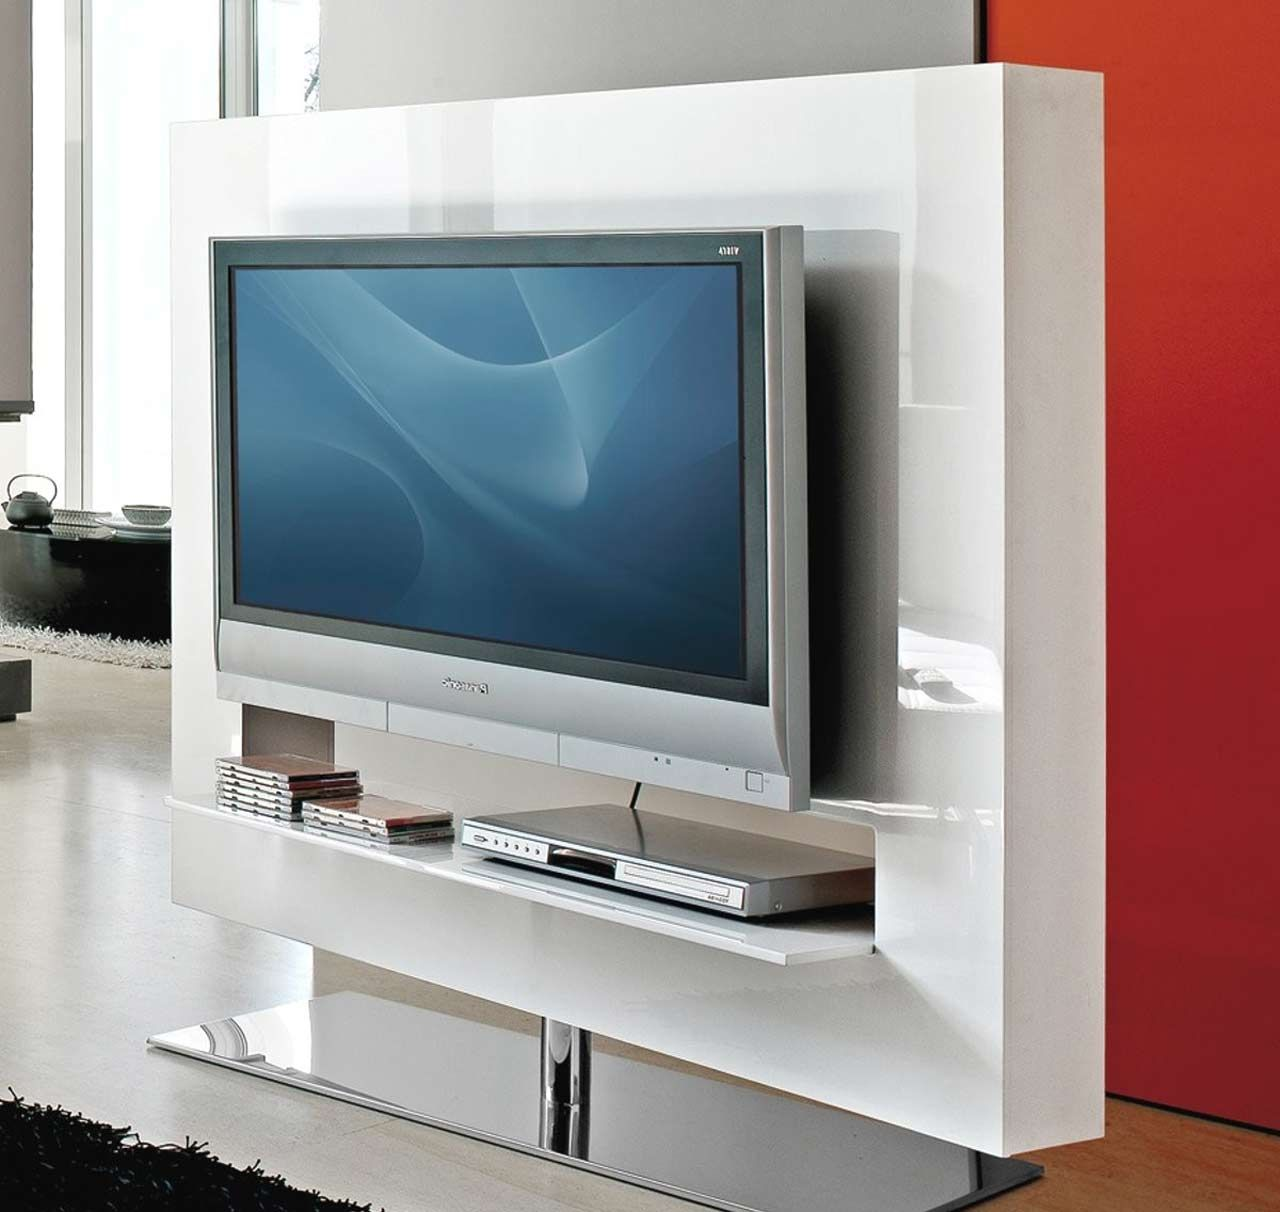 Best Rotating Television Stand Ideas Http Www Lookmyhomes Com Moving The Tv With Ease Rotating Television Stand Muebles Para Tv Casas Cosas De Casa